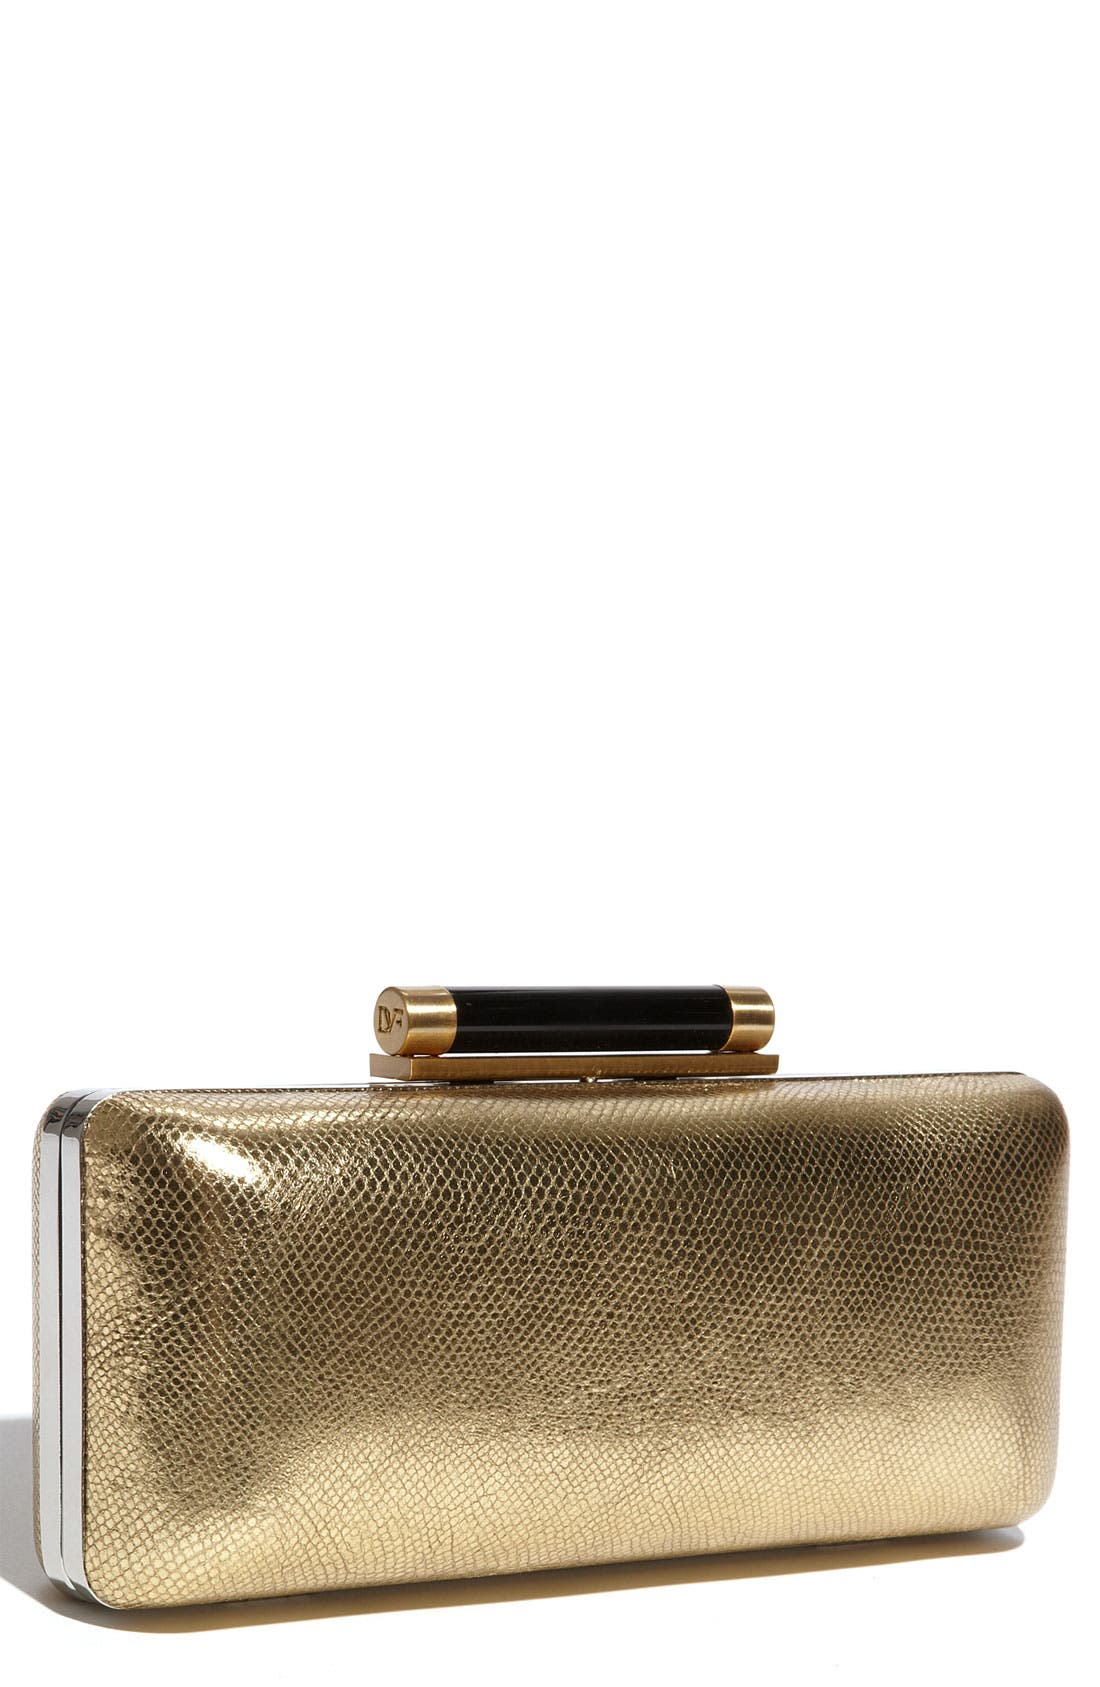 Alternate Image 1 Selected - Diane von Furstenberg 'Tonda' Metallic Leather Clutch